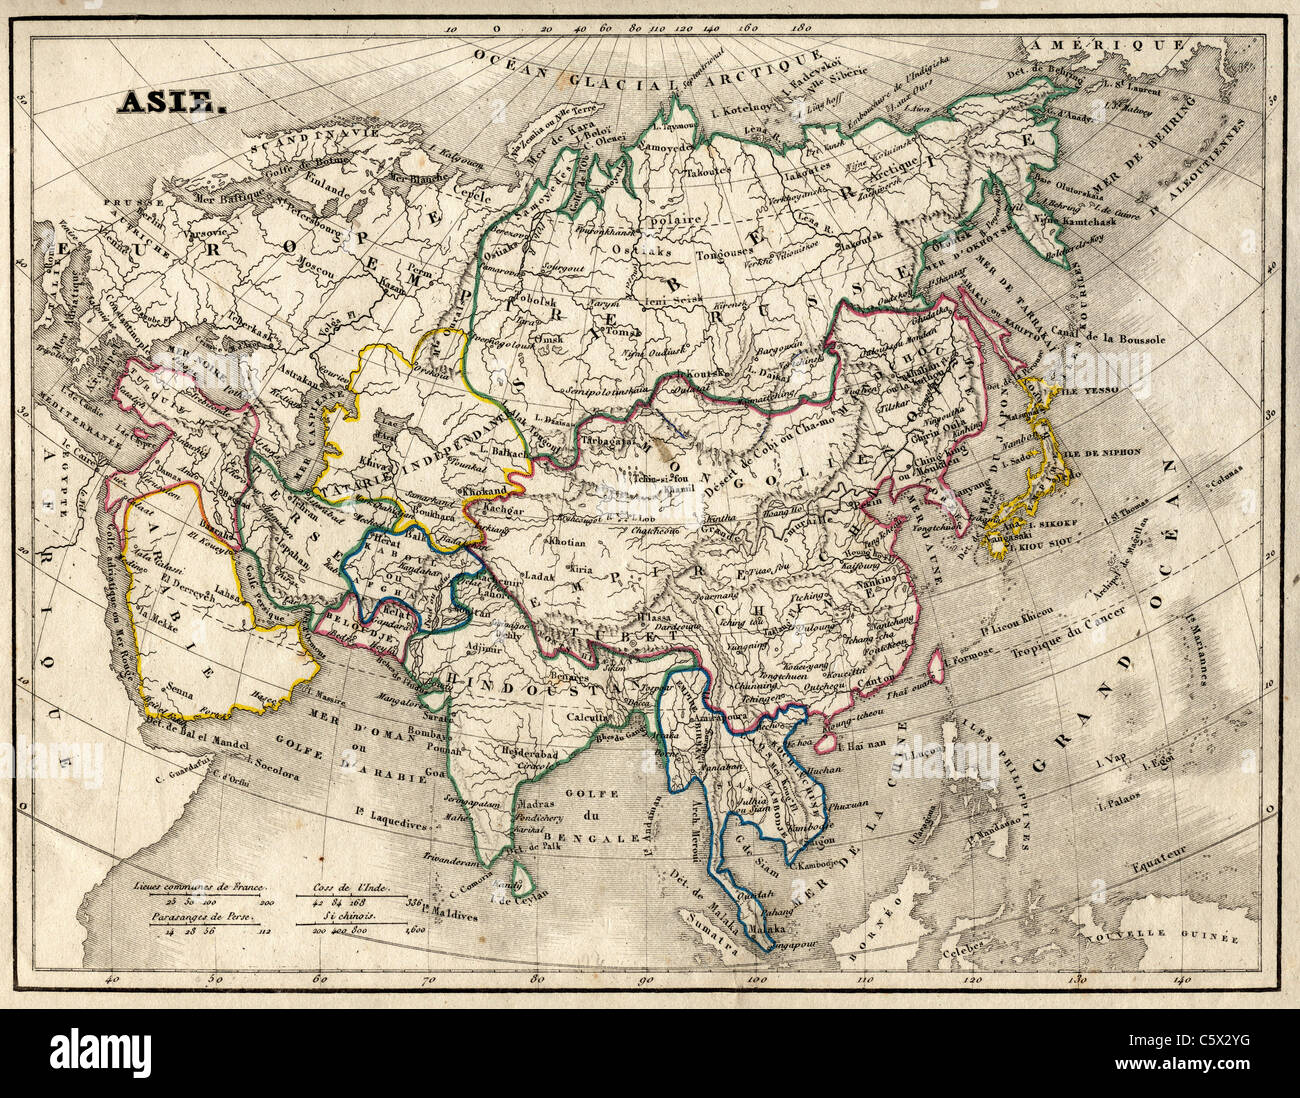 Asie (Asia) Antiquarian Map from 'Atlas Universel de Geographie Ancienne and Moderne' by cartographer C. - Stock Image